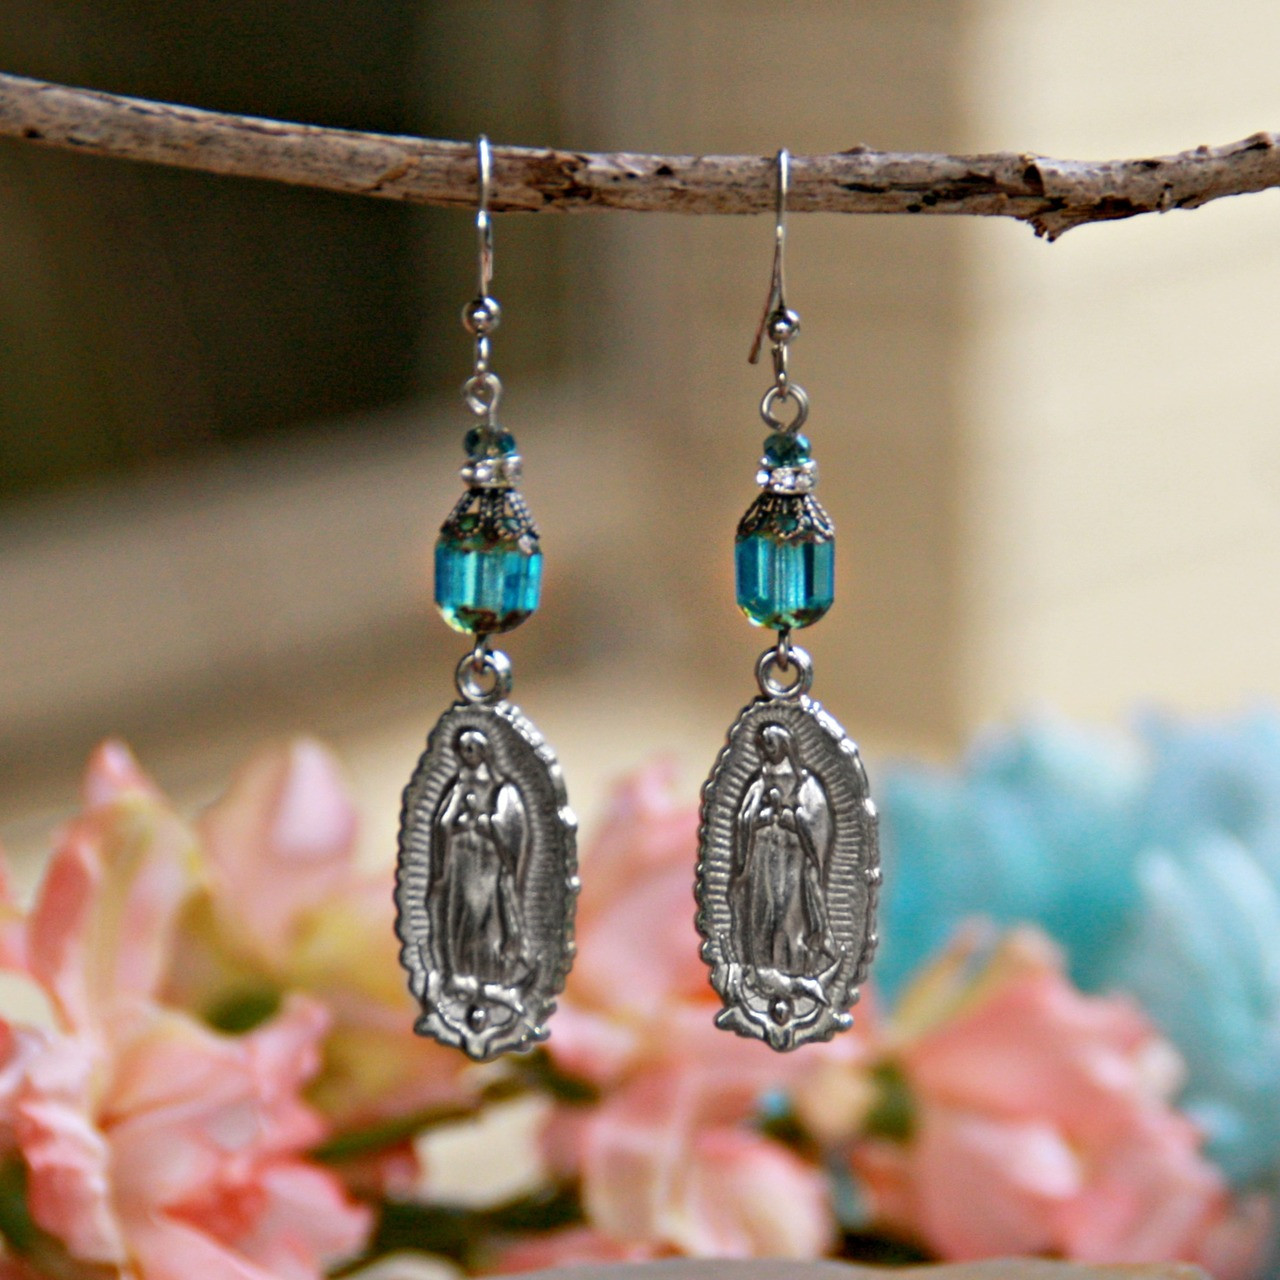 IN-97  Lady of Guadalupe Earrings Teal Crystal Earrings